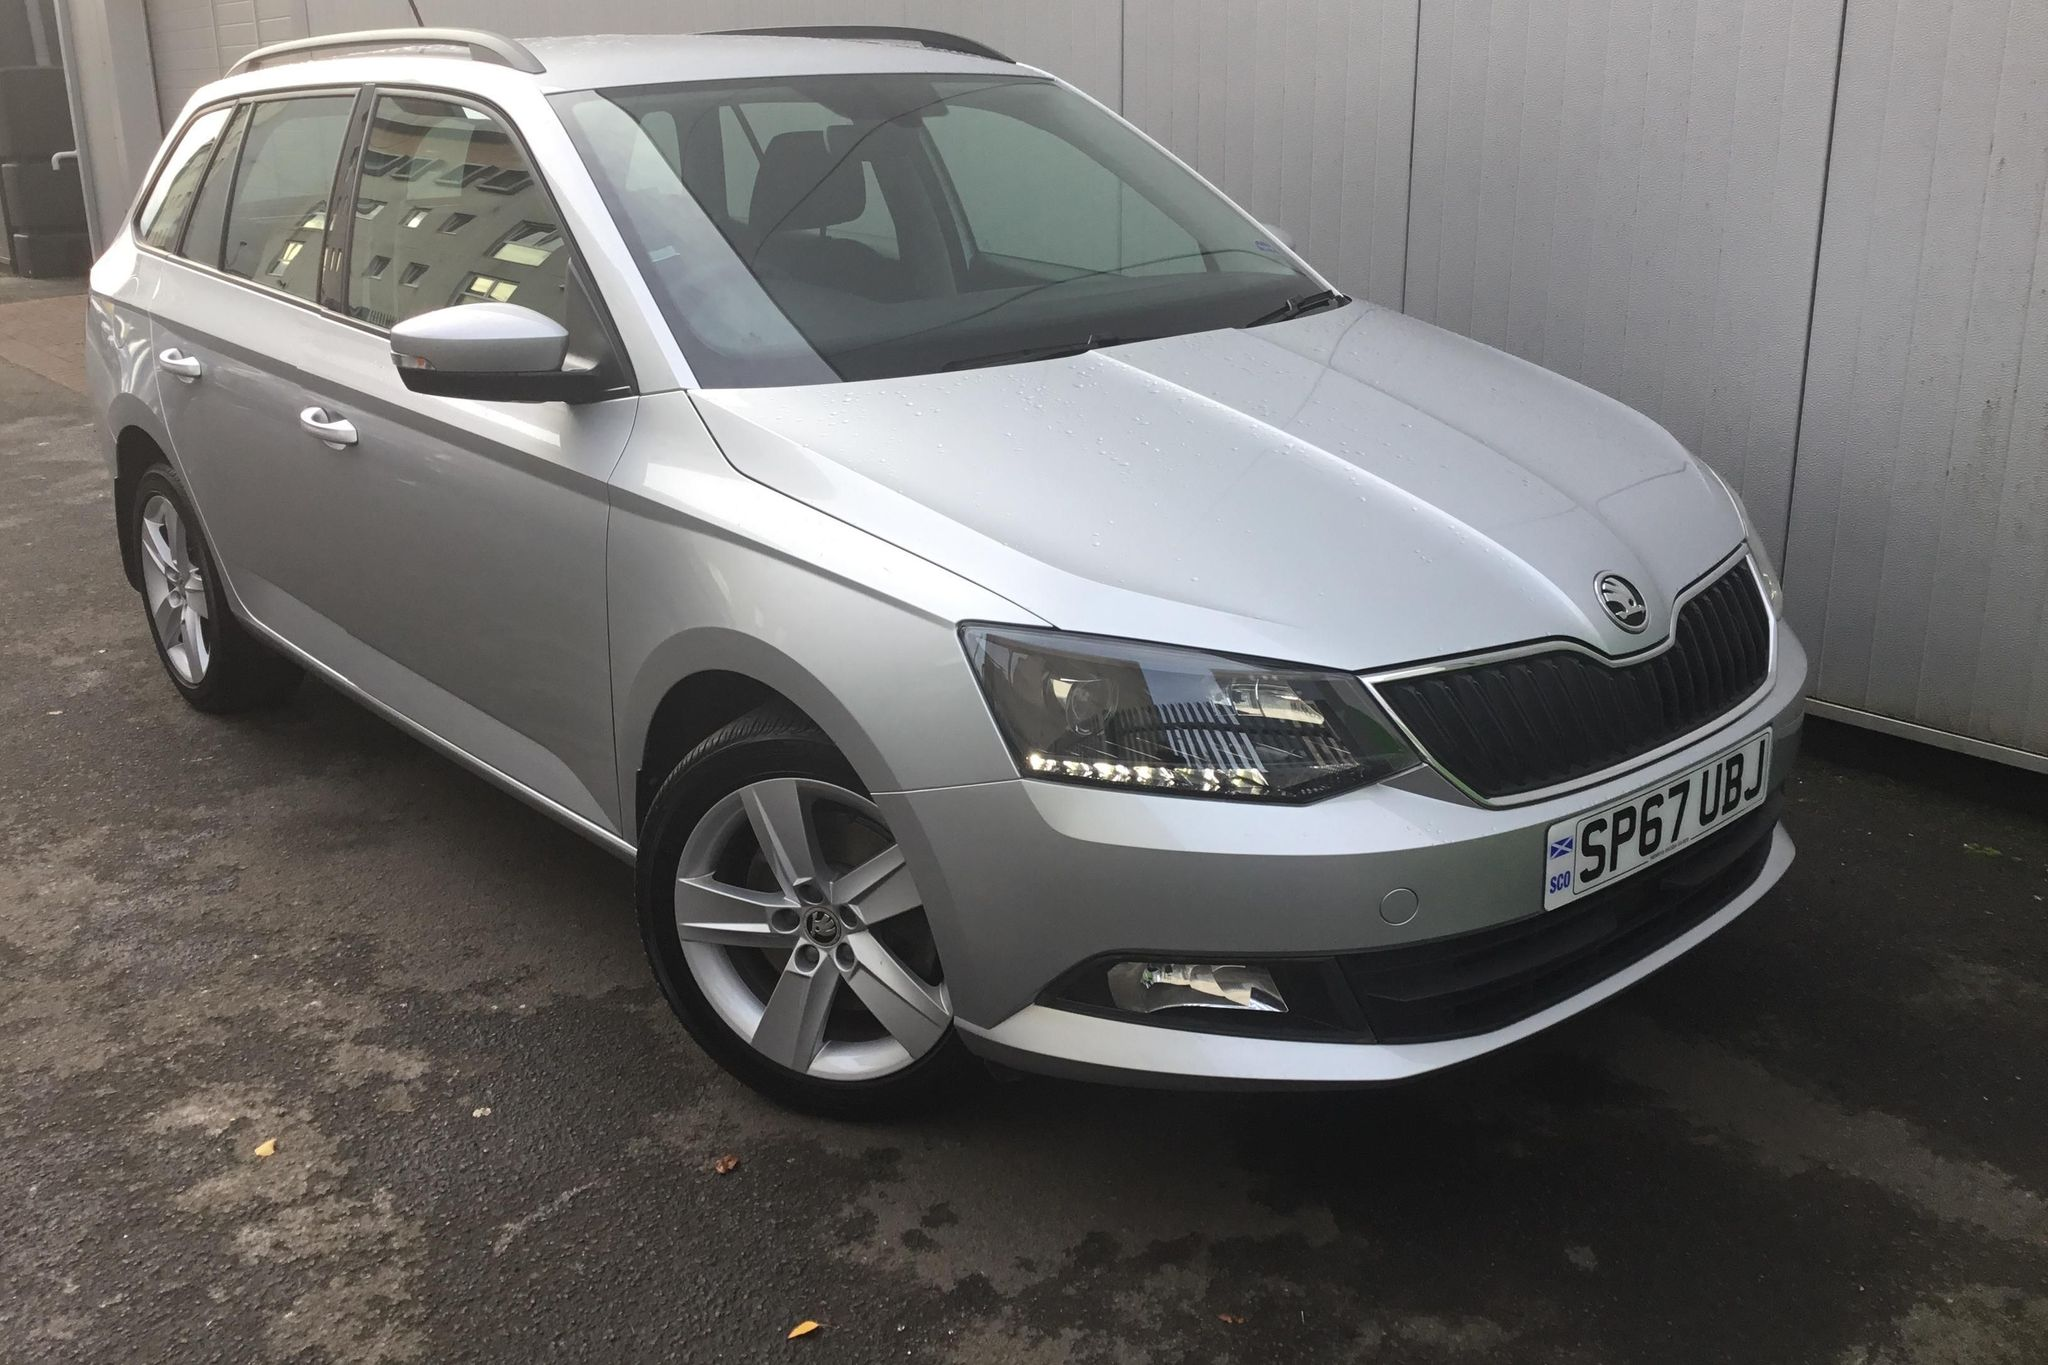 ŠKODA Fabia 1.0 TSI SE L (110PS) S/S 5-Dr Estate